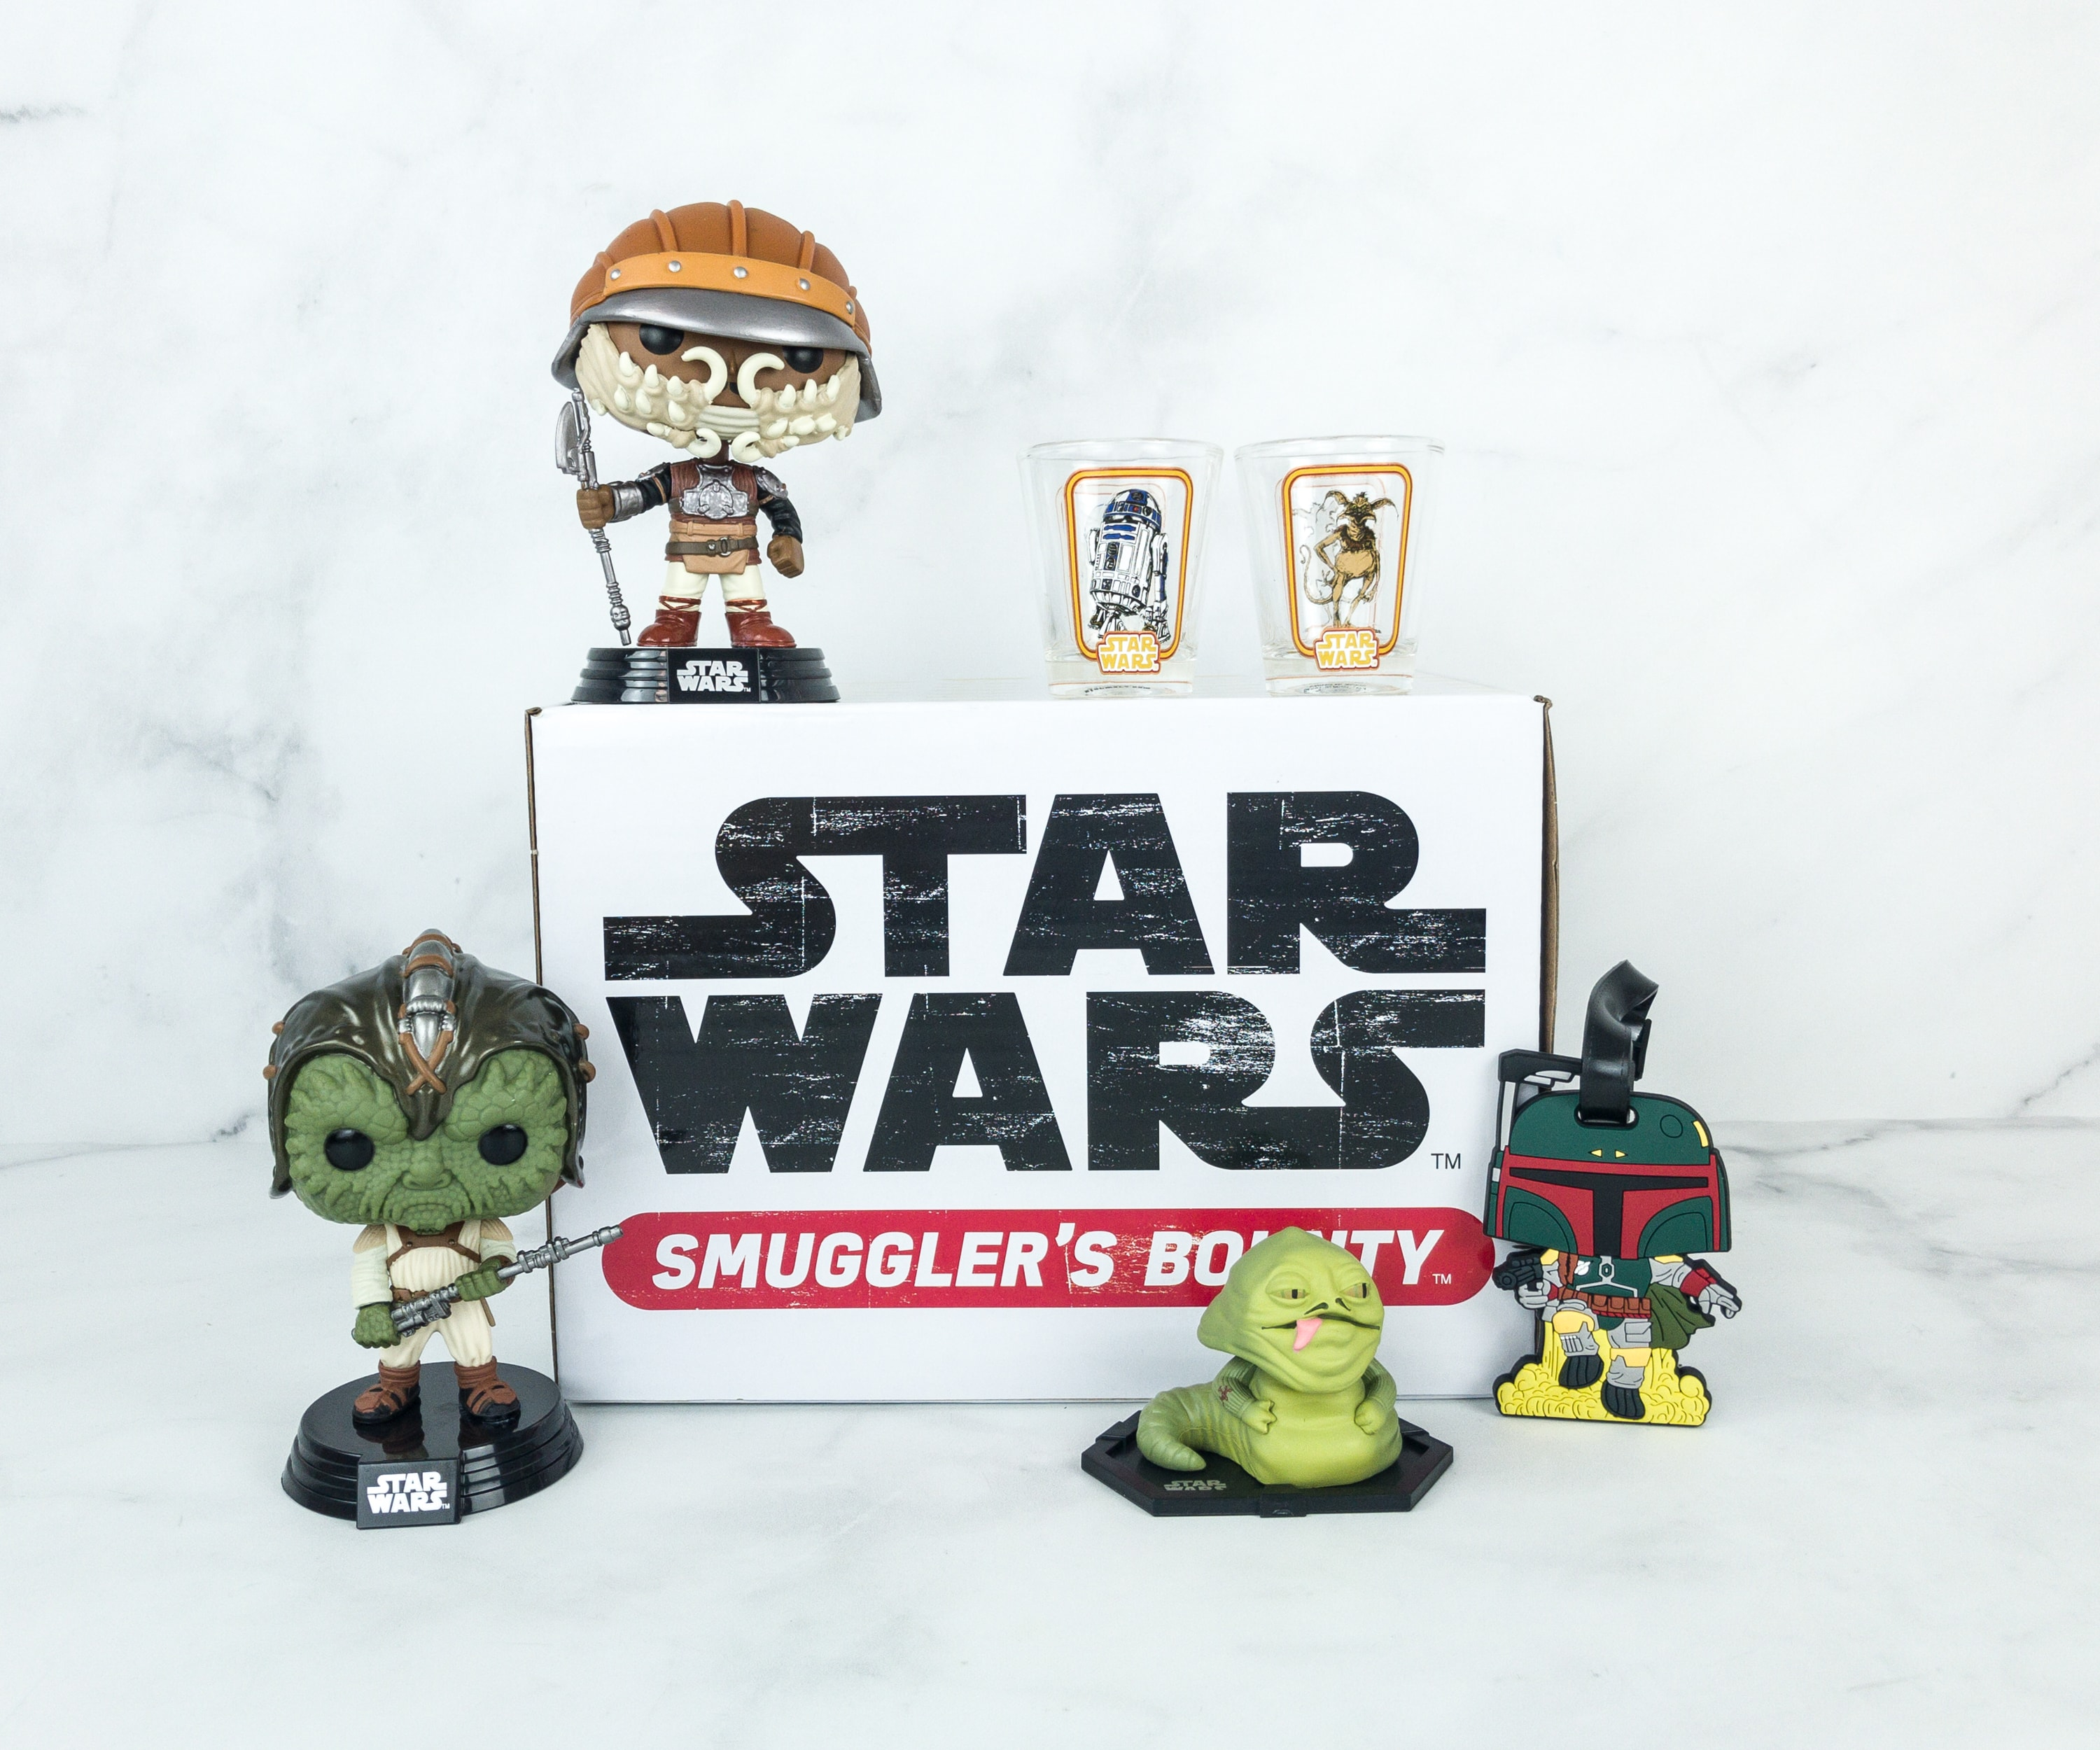 Smuggler's Bounty December 2018 Subscription Box Review – JABBA'S SKIFF Box!